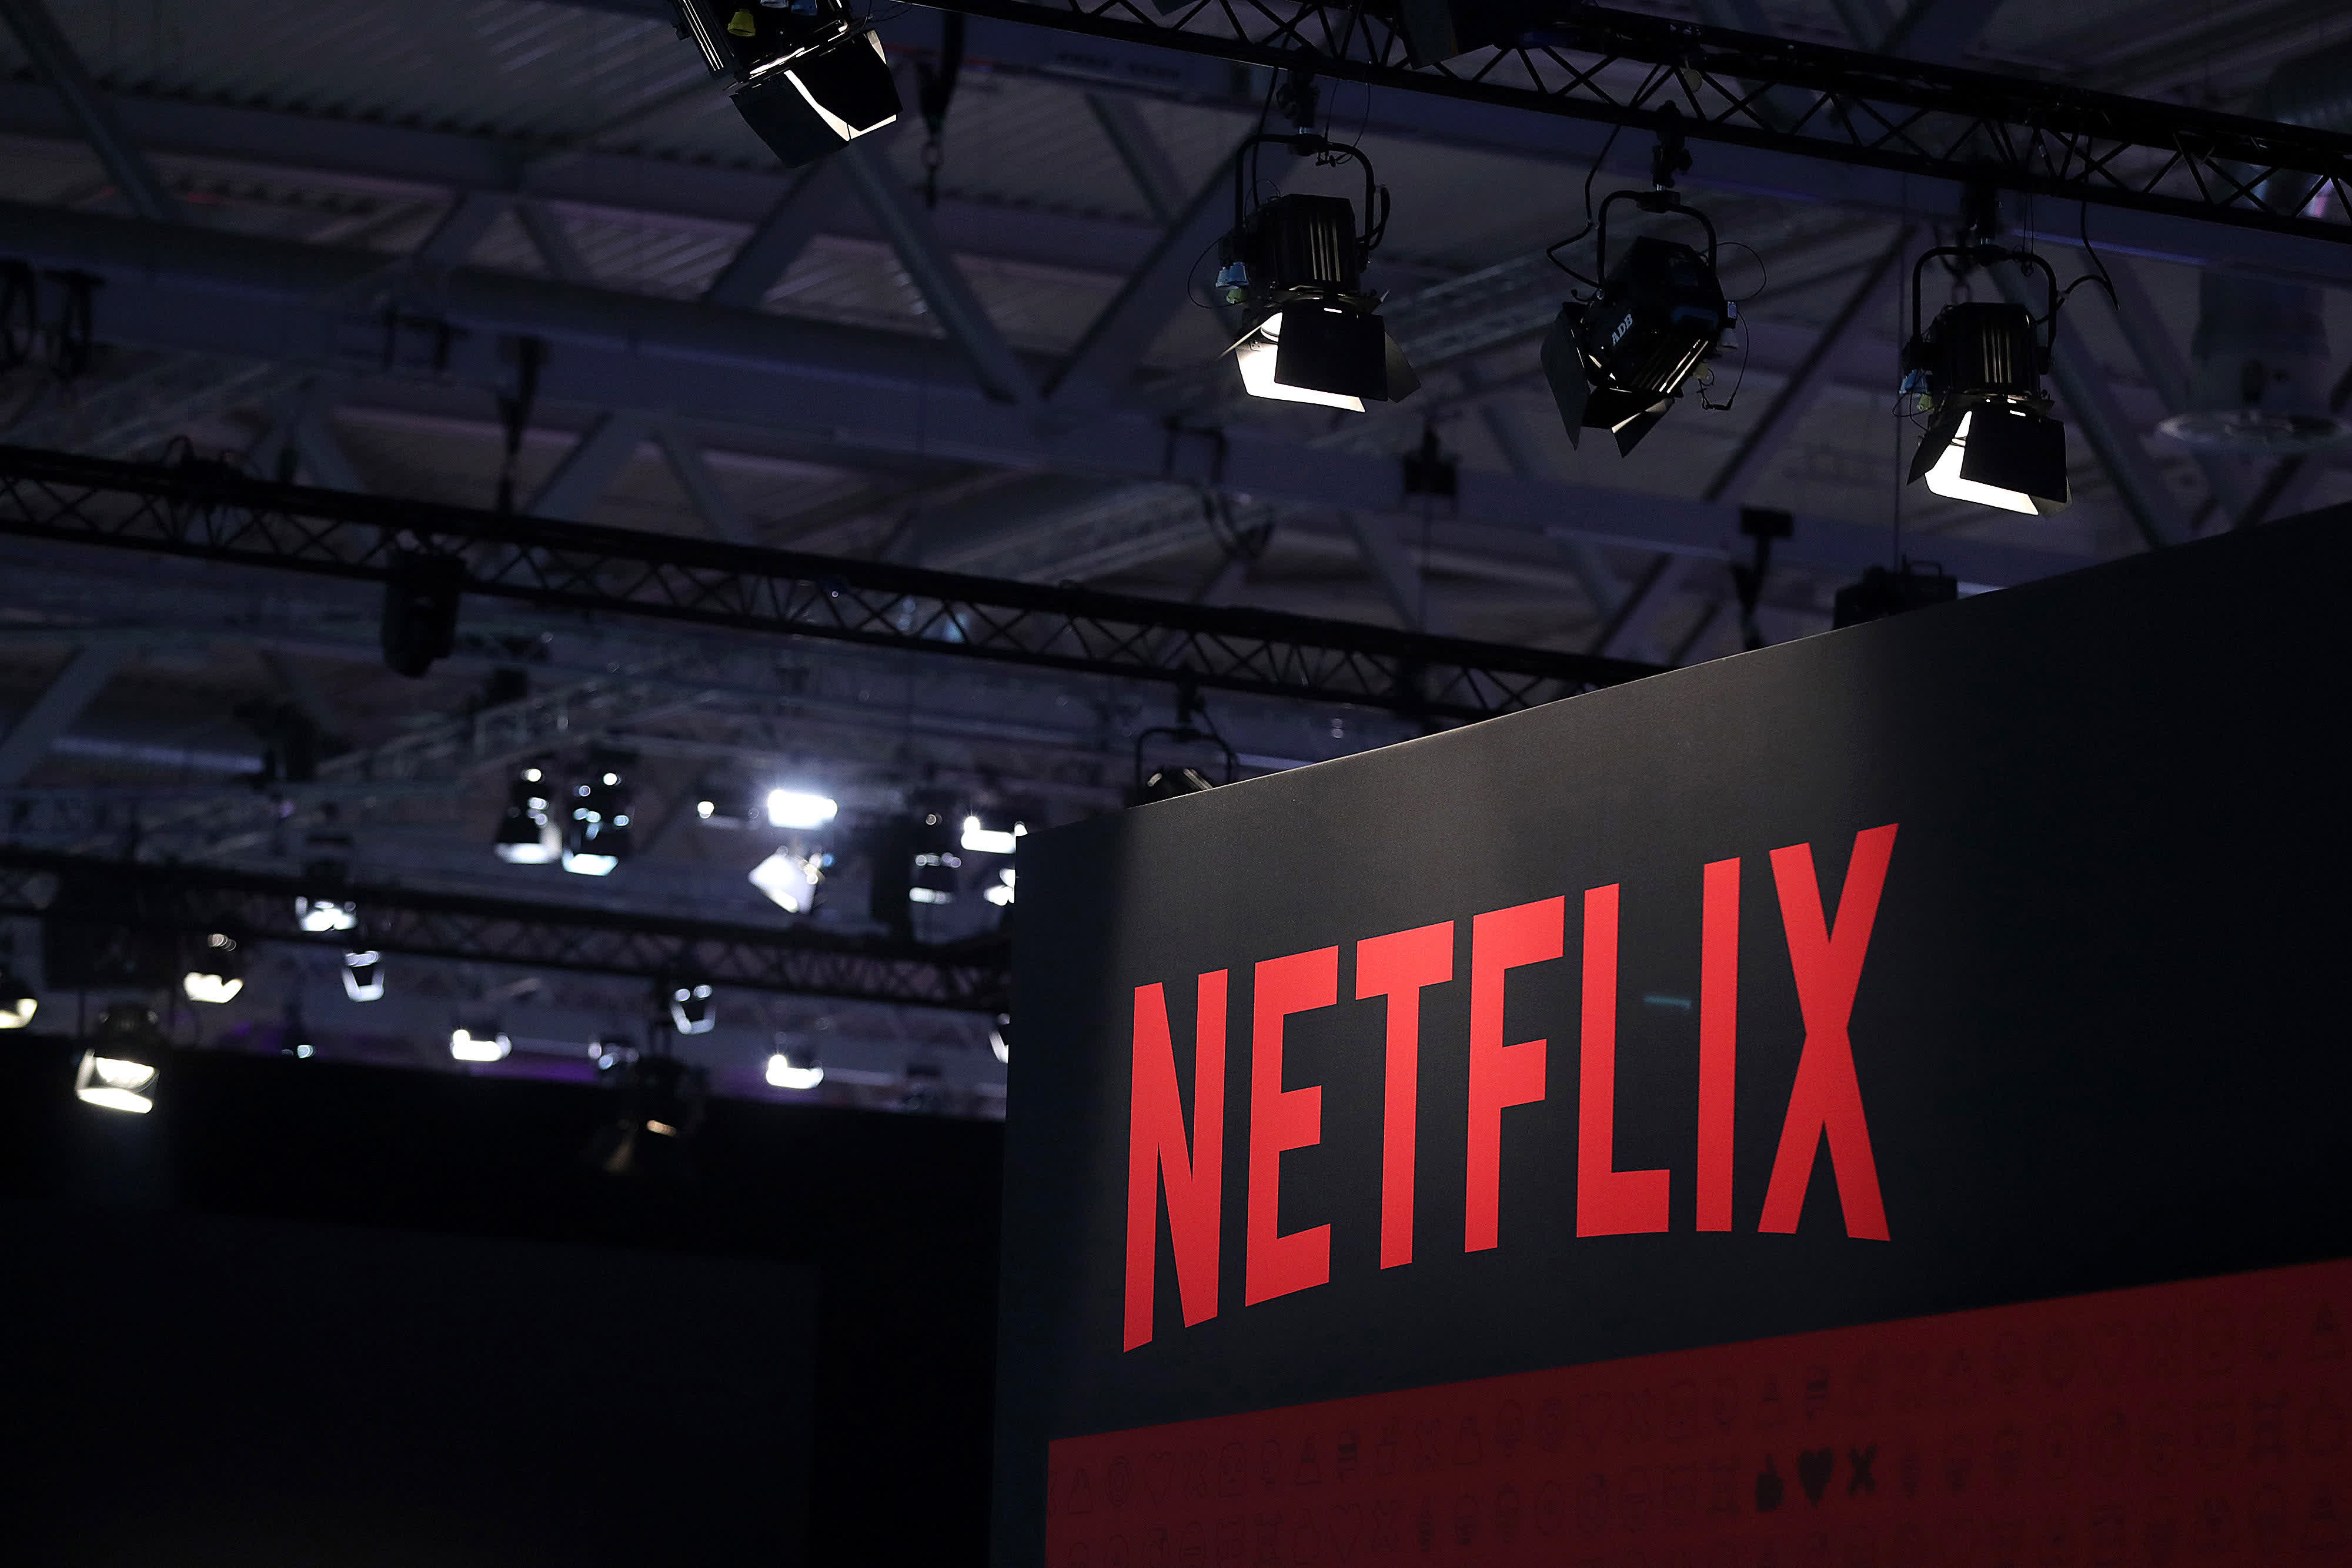 Netflix is testing new anti-account sharing measures on some users